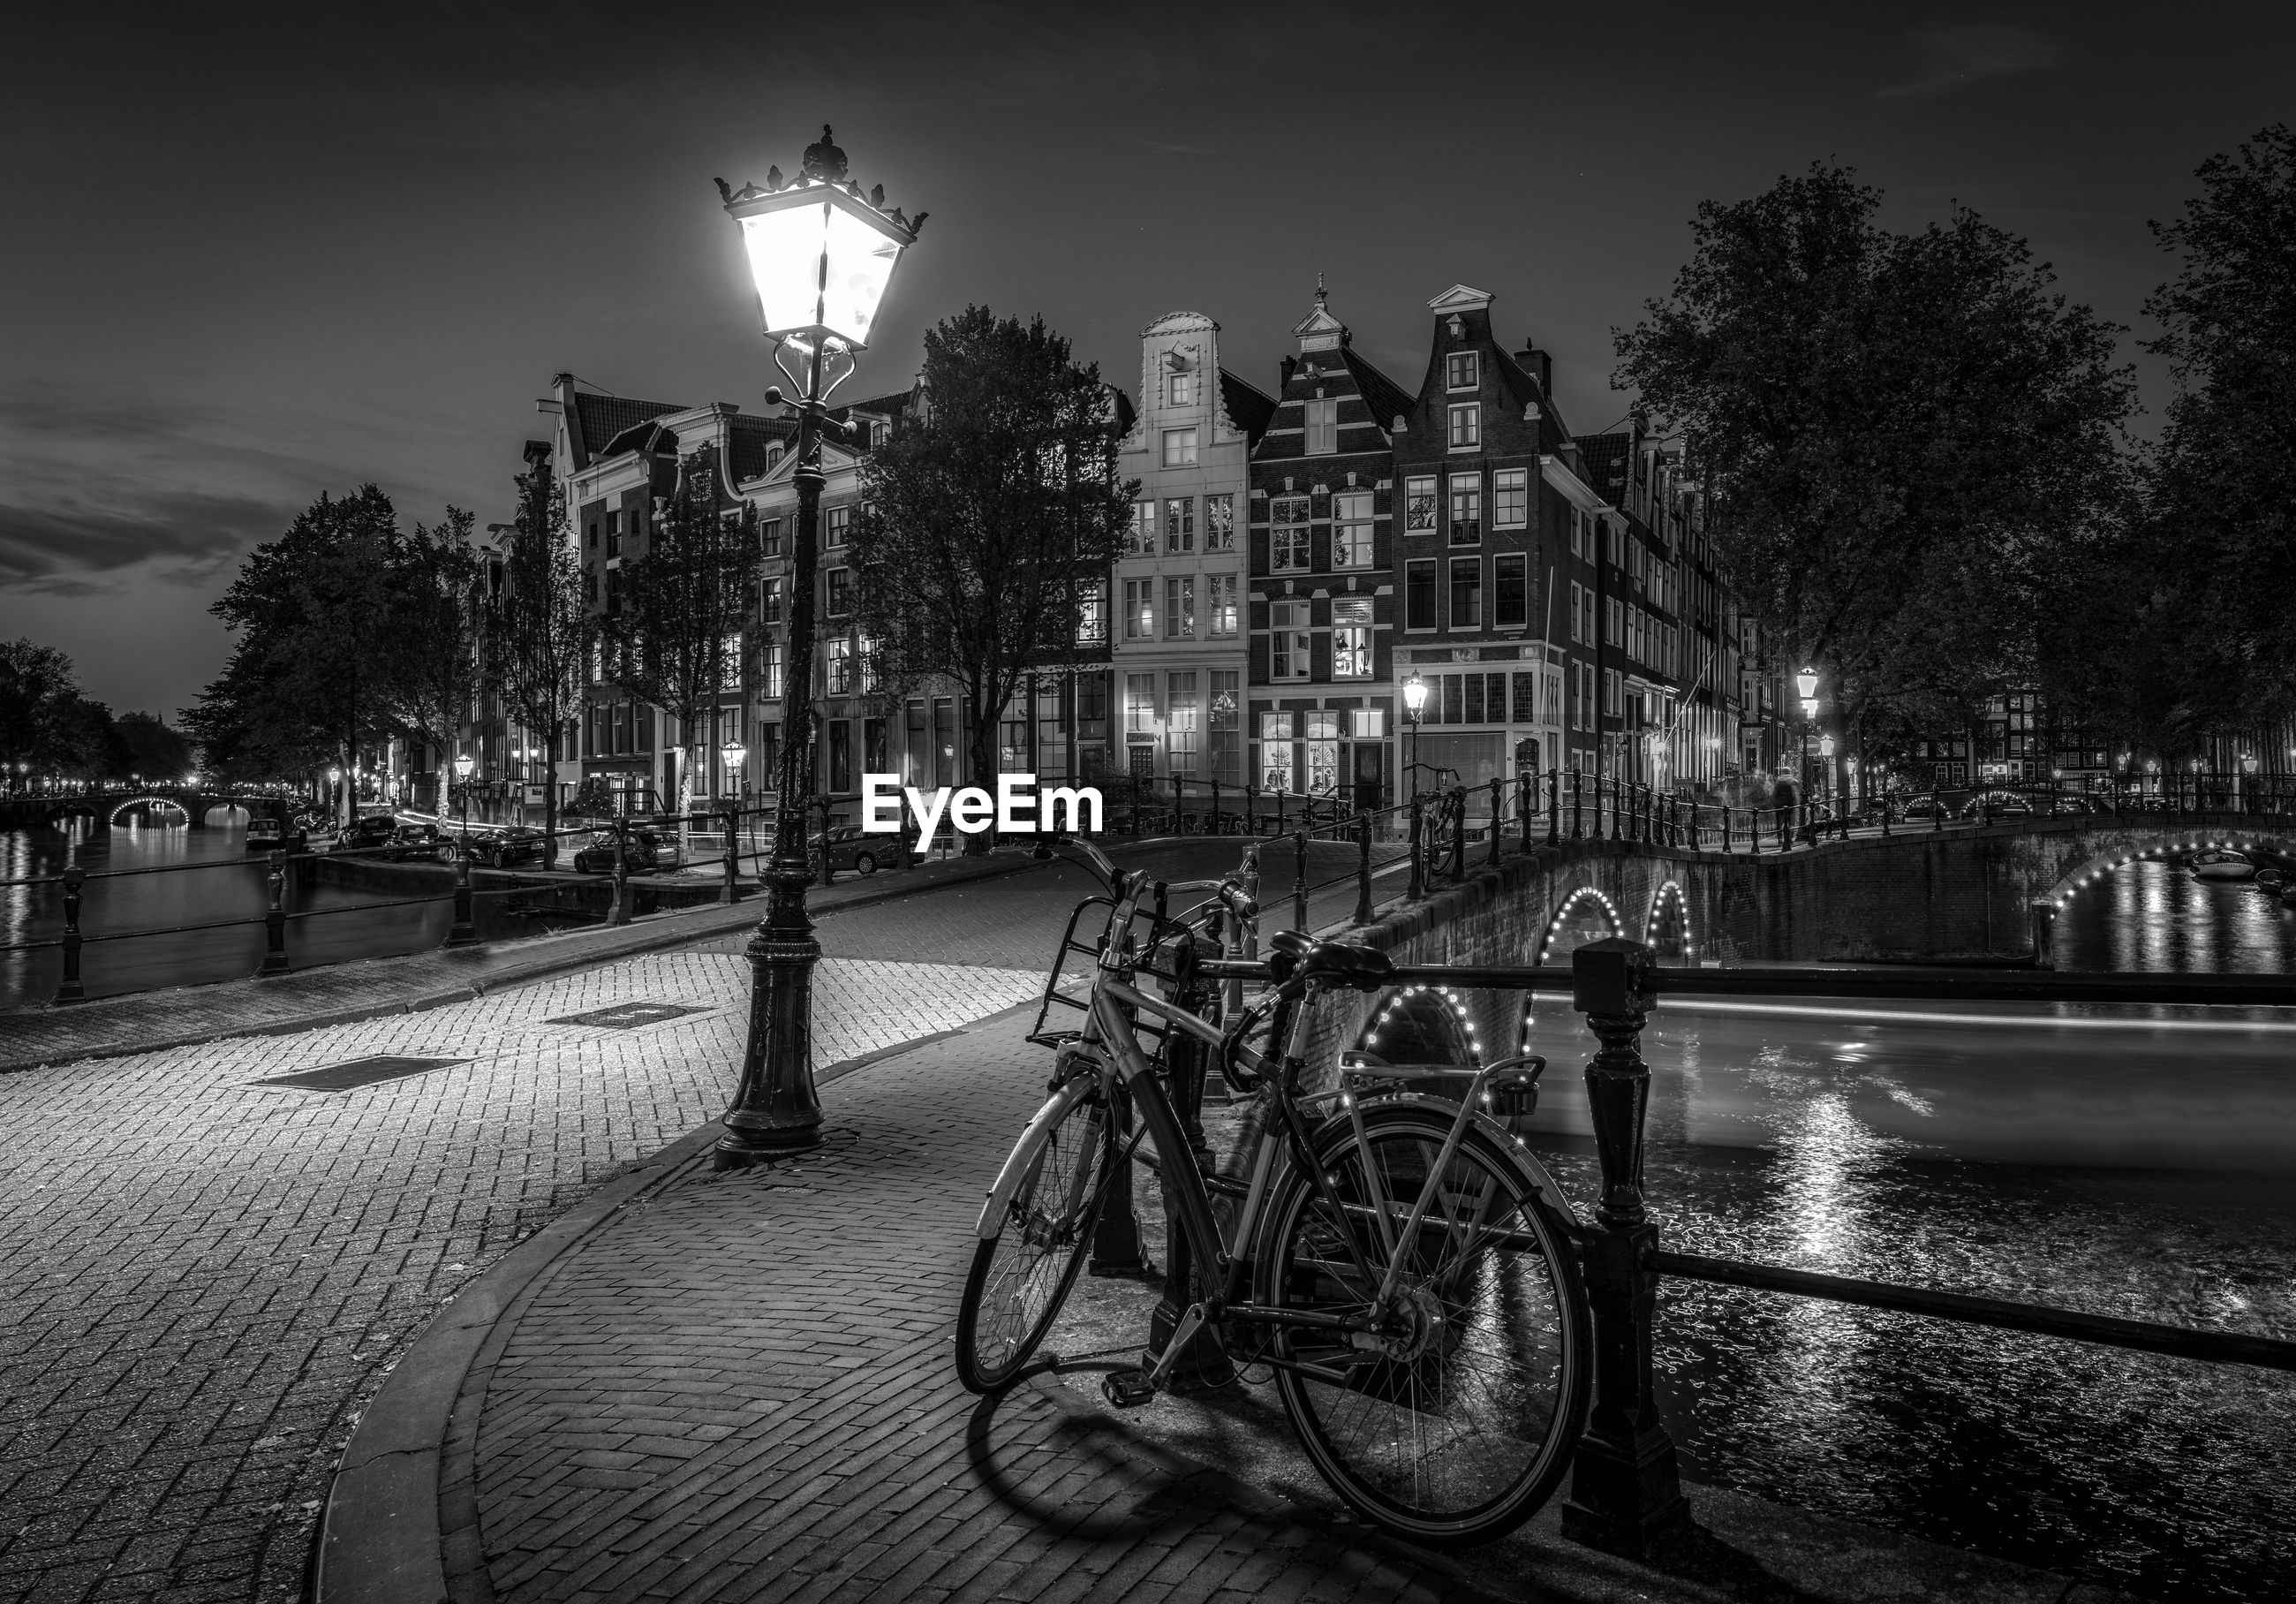 Illuminated street by buildings against sky at night amsterdam